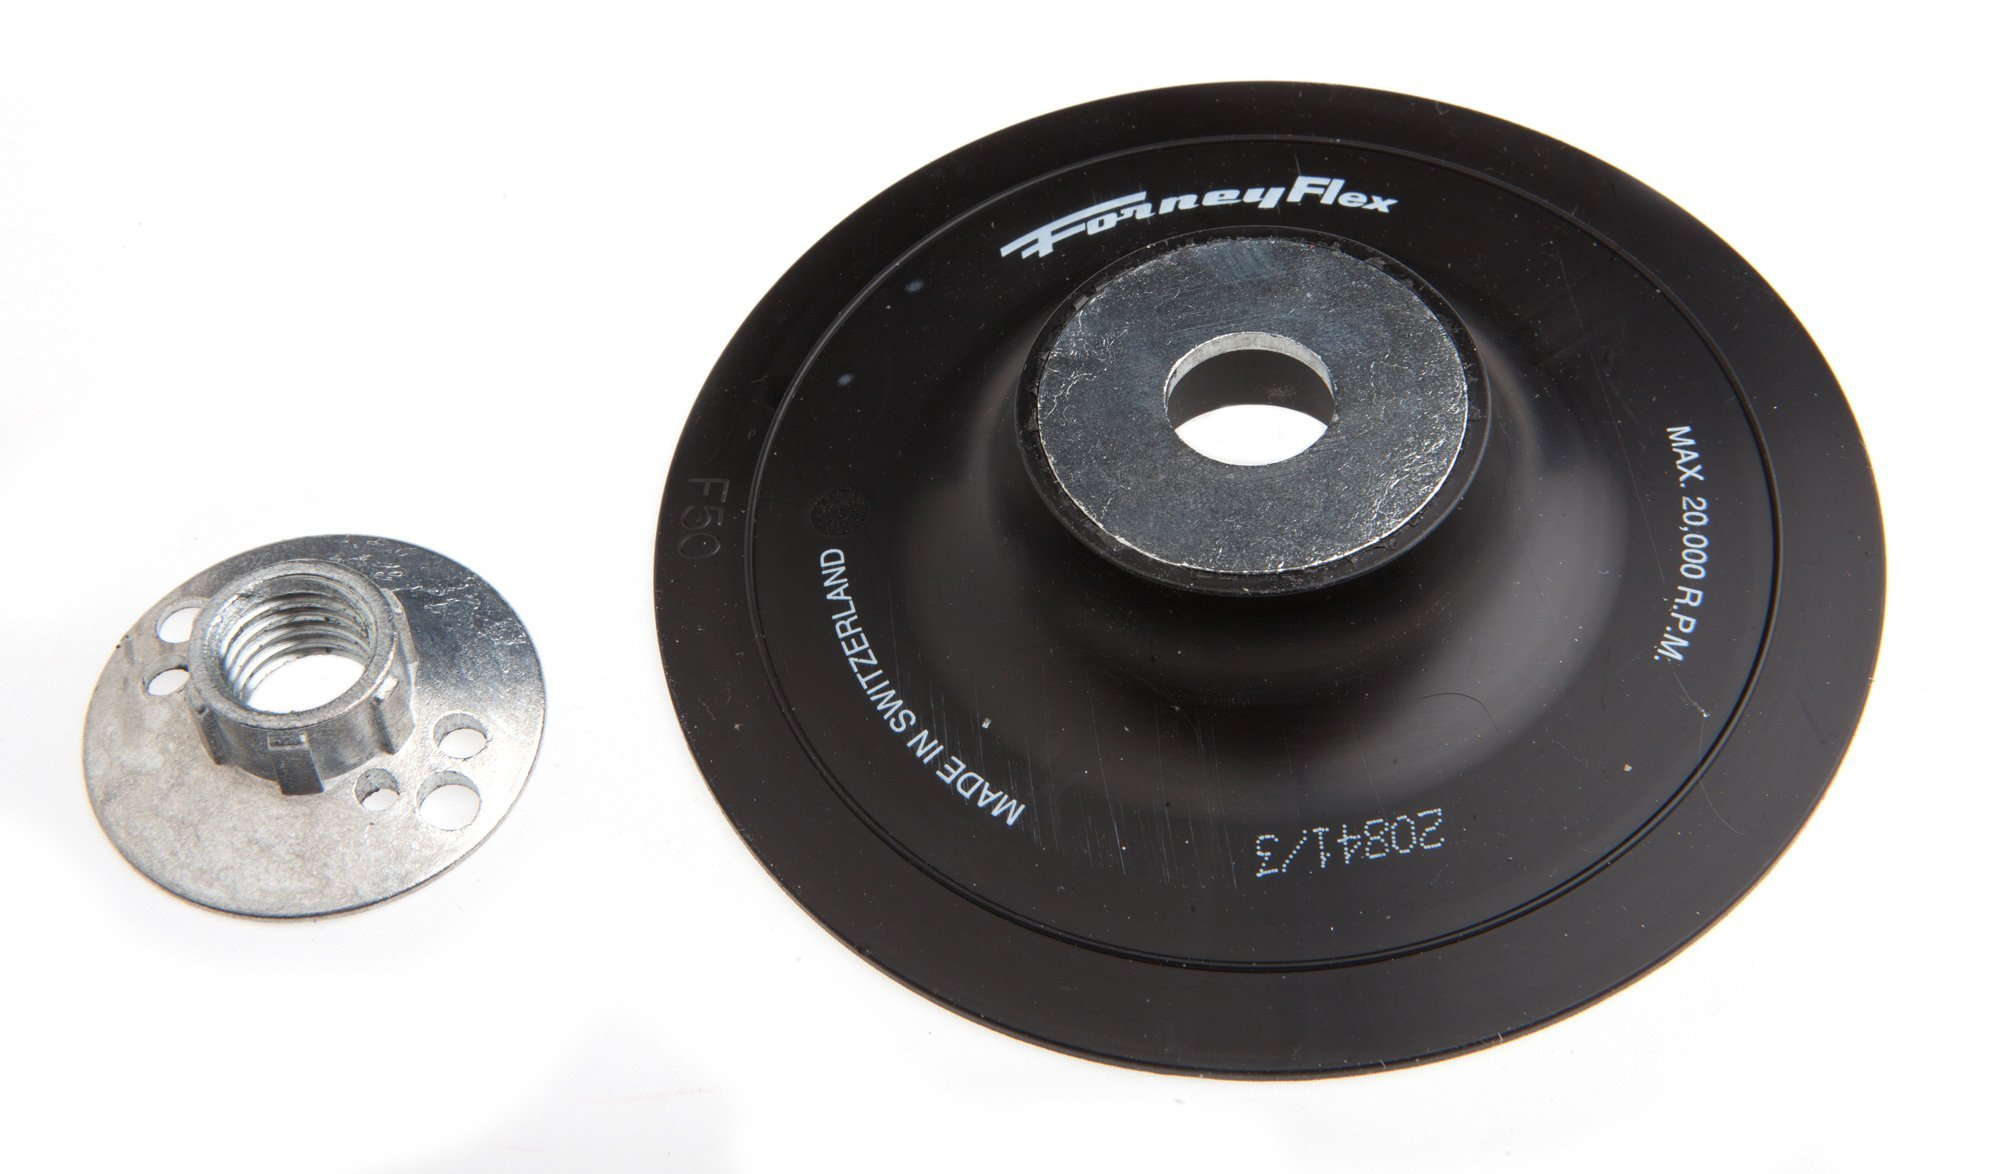 Forney 72322 Backing Pad with 5/8-Inch-11 Spindle Nut, 5-Inch